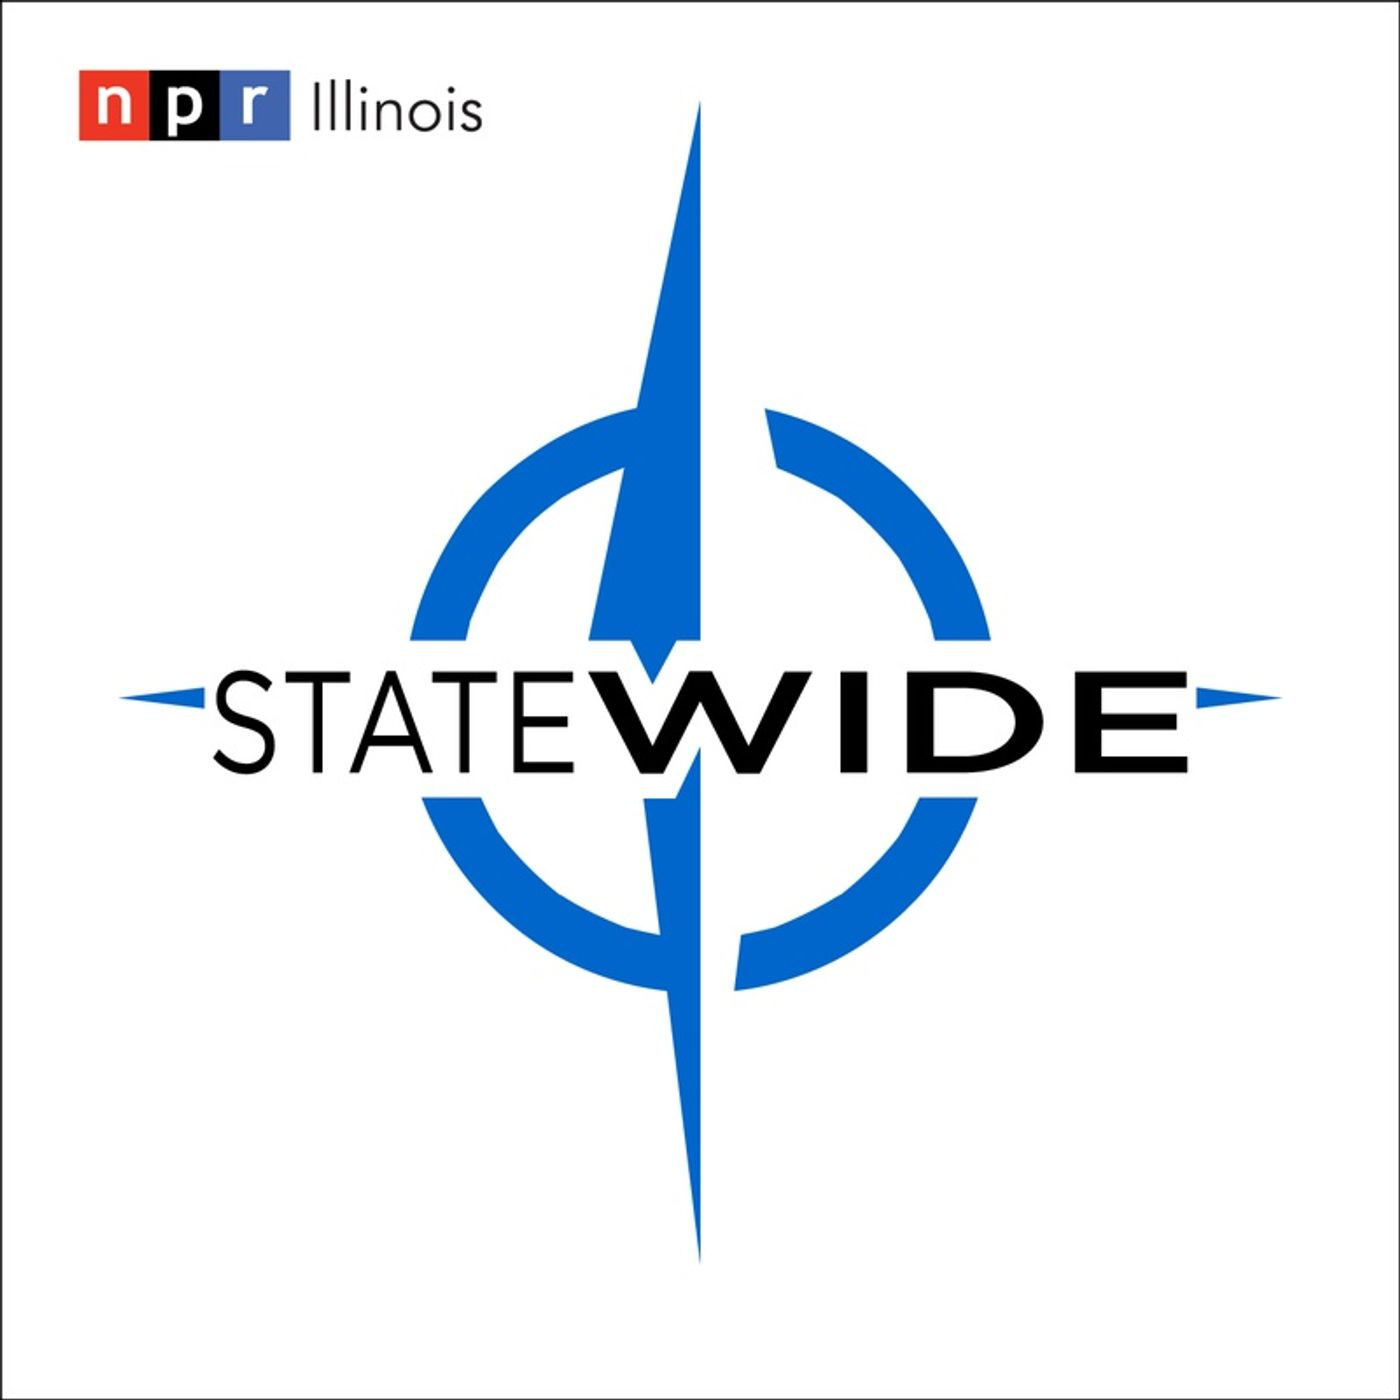 Heartland Newsfeed Radio Network: NPR Illinois' Statewide (June 15, 2019)